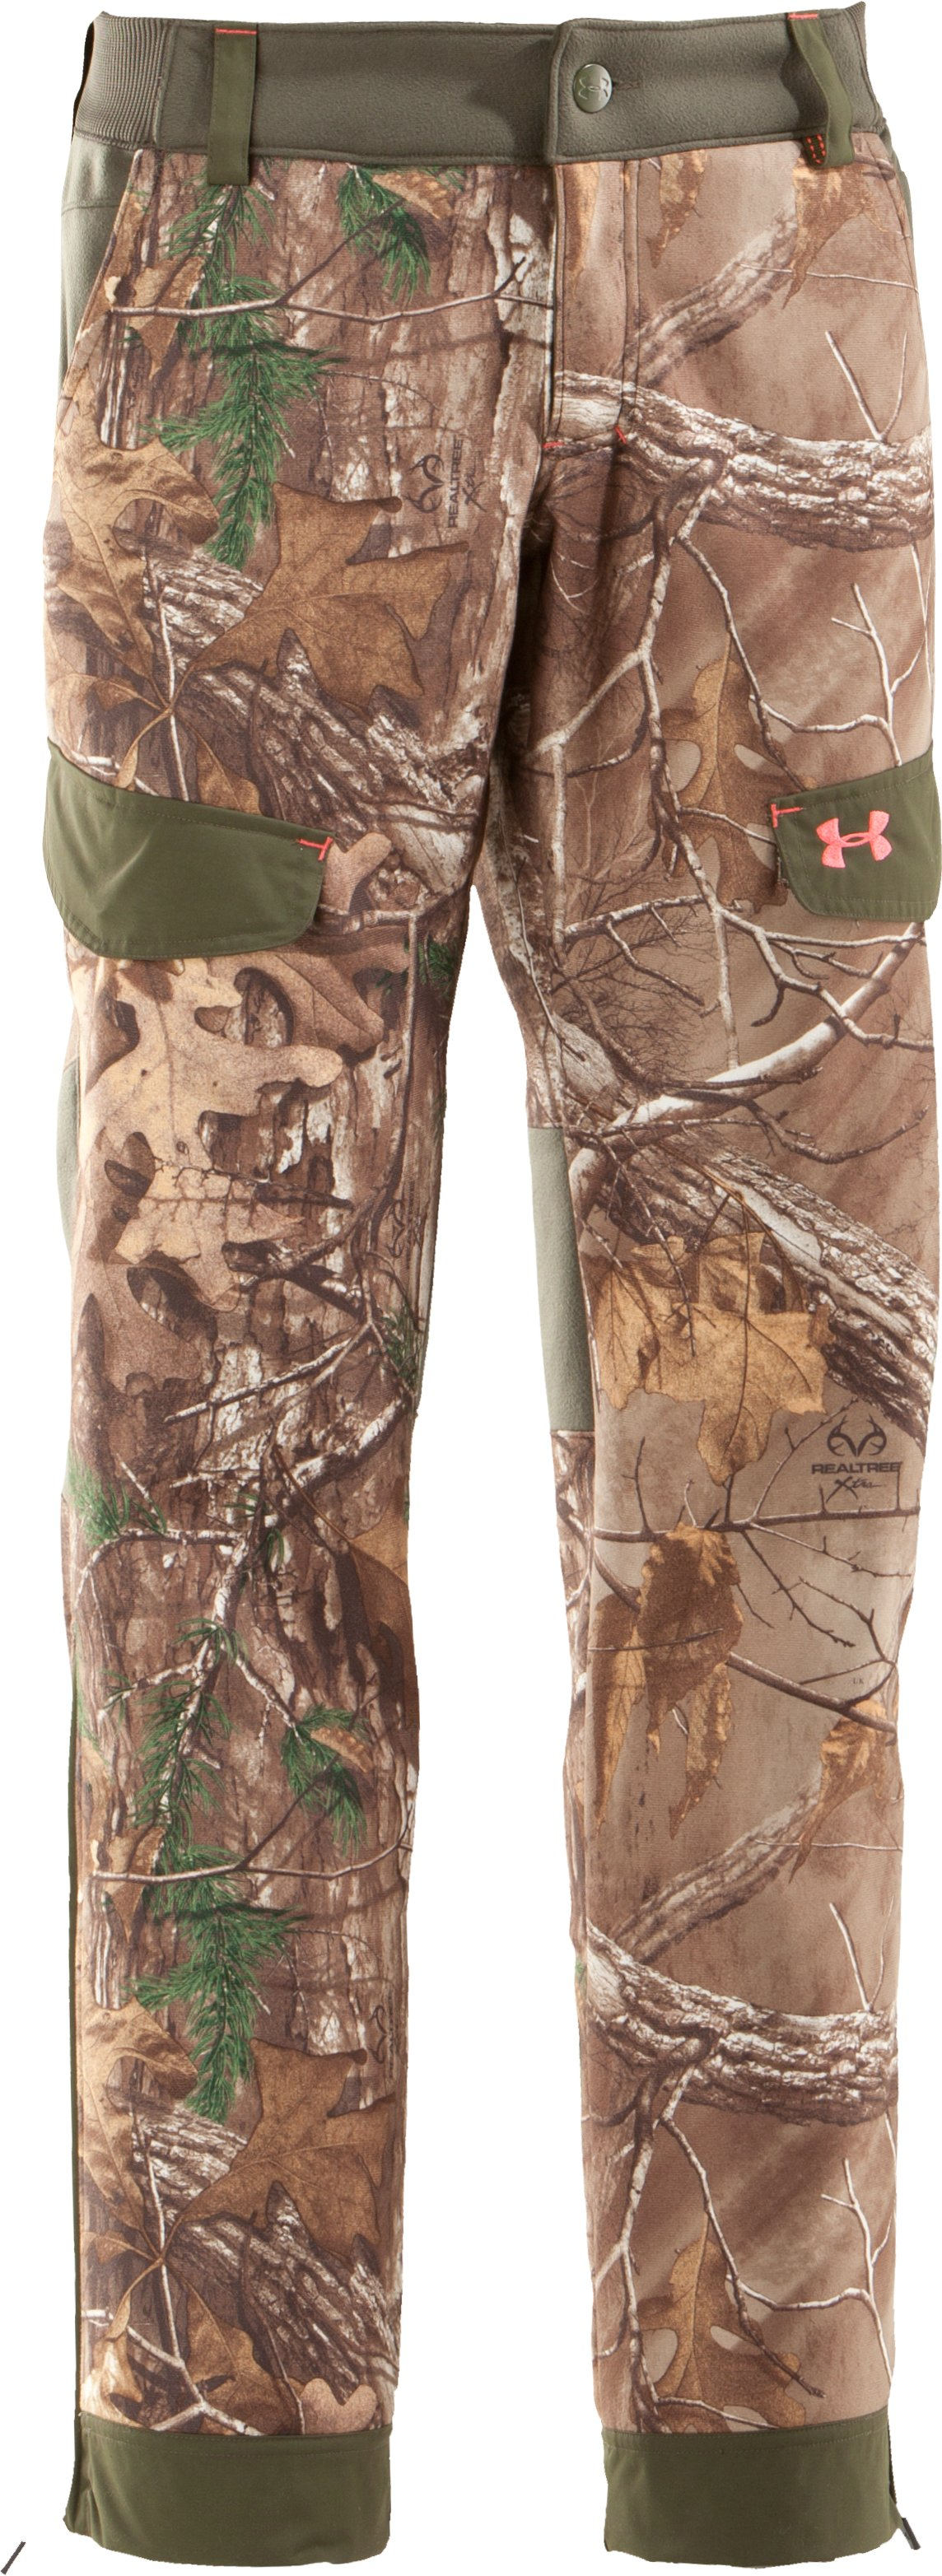 Women's Ayton Fleece Pants, REALTREE AP-XTRA